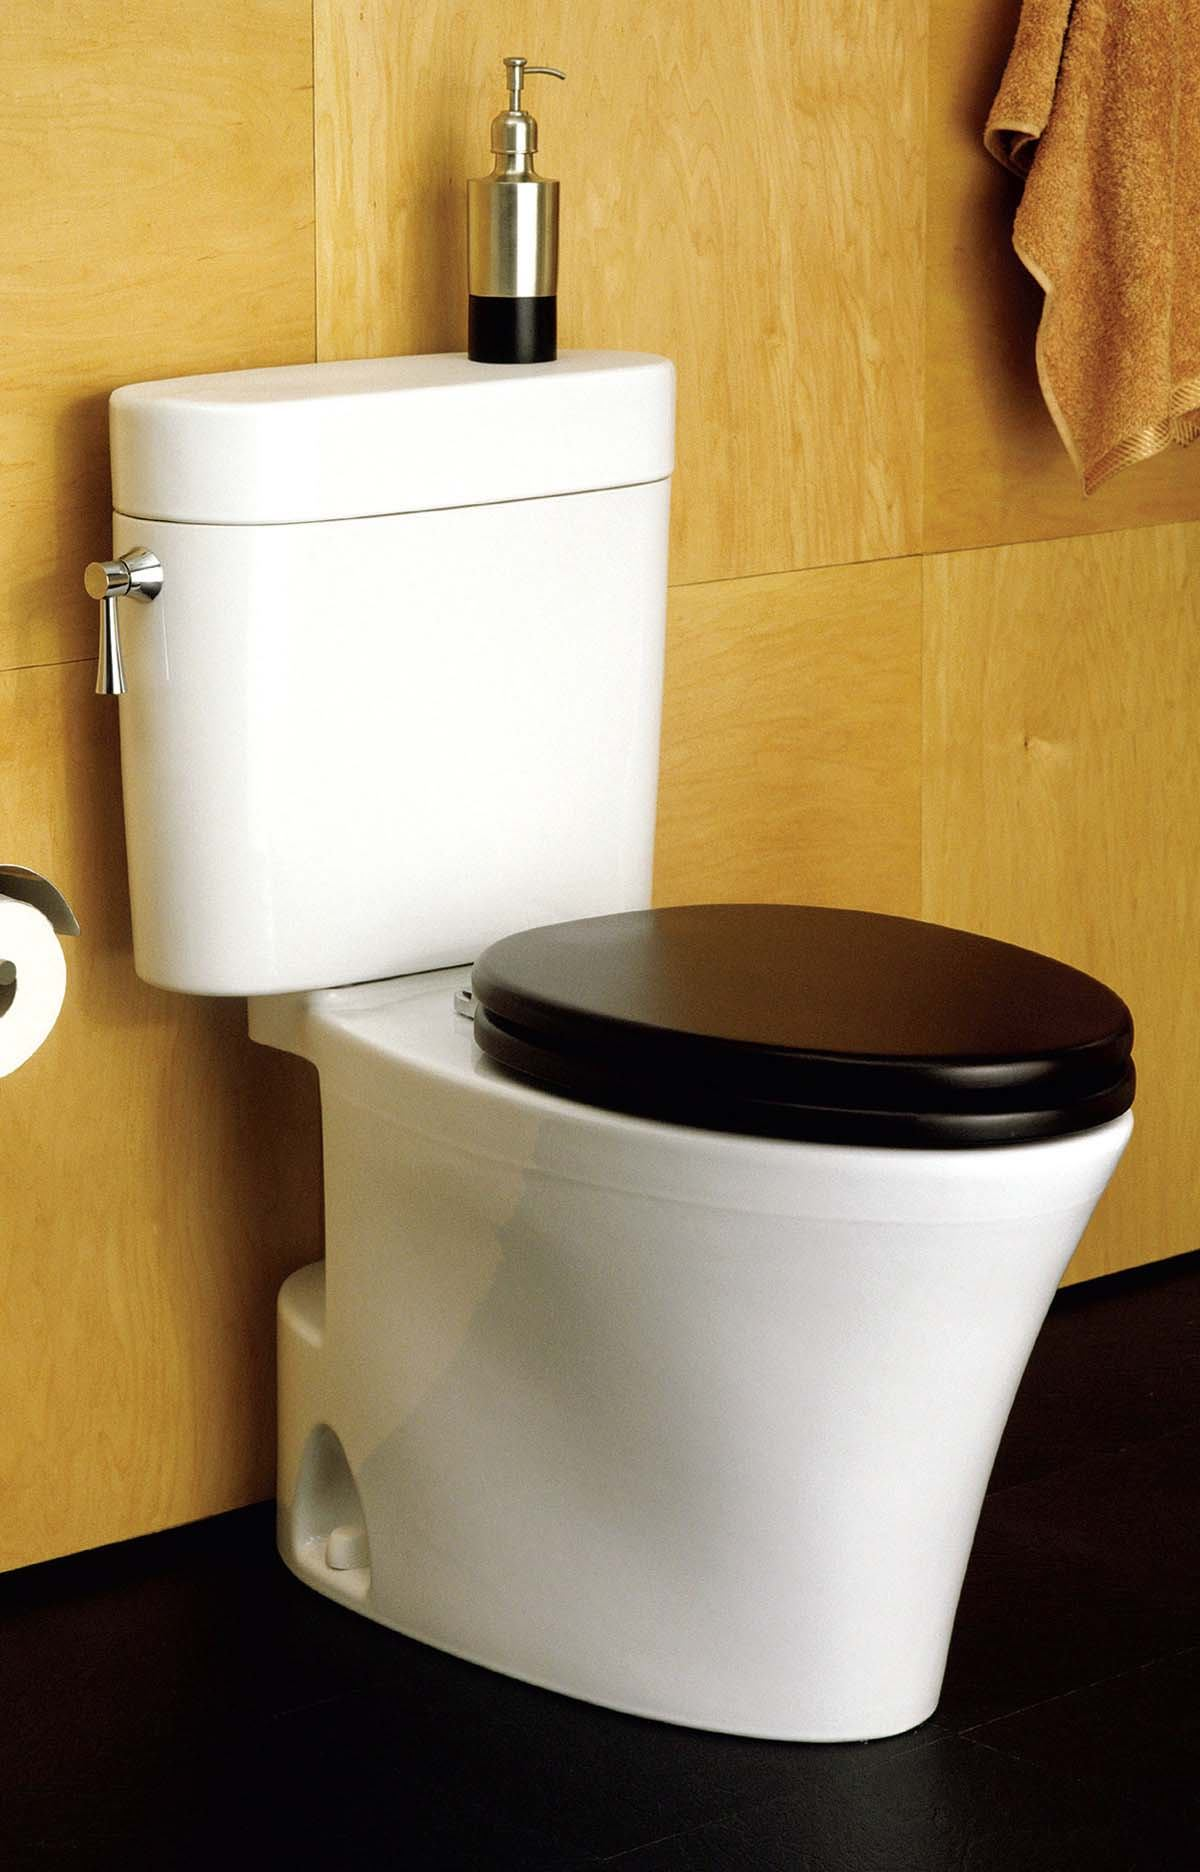 Eco Nexus 1.28 gpf high-efficiency toilet from Toto USA | Architect ...